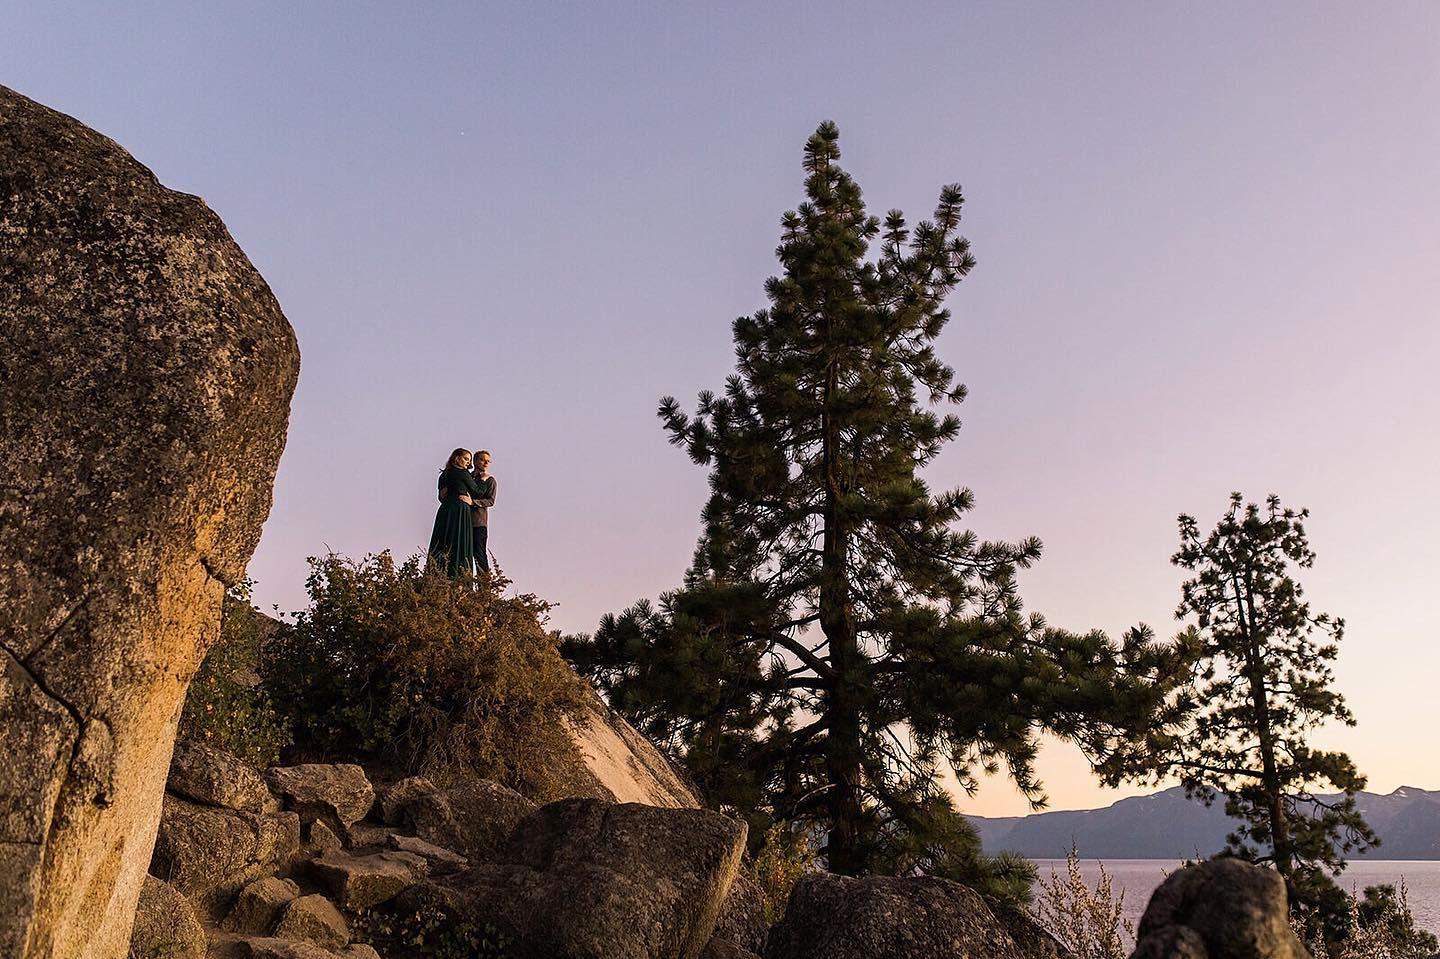 These two. This location. Could you ask for more?! 🏔 💚 📷  #laketahoe #laketahoeengagementphotos #engagedtahoe #lakeengagement #snowyengagementphotos #adventurephotographer #mountainphotography #travelweddingphotography #mountainelopement  #yosemitenationalpark #placestoelope#naturewedding #heyheyhellomay #theknot #thatsdarling #utahweddingphotographer #yosemiteweddingphotographer #coloradoweddingphotographer #oregonweddingphotographer #hawaiiweddingphotographer #joshuatreeweddingphotographer